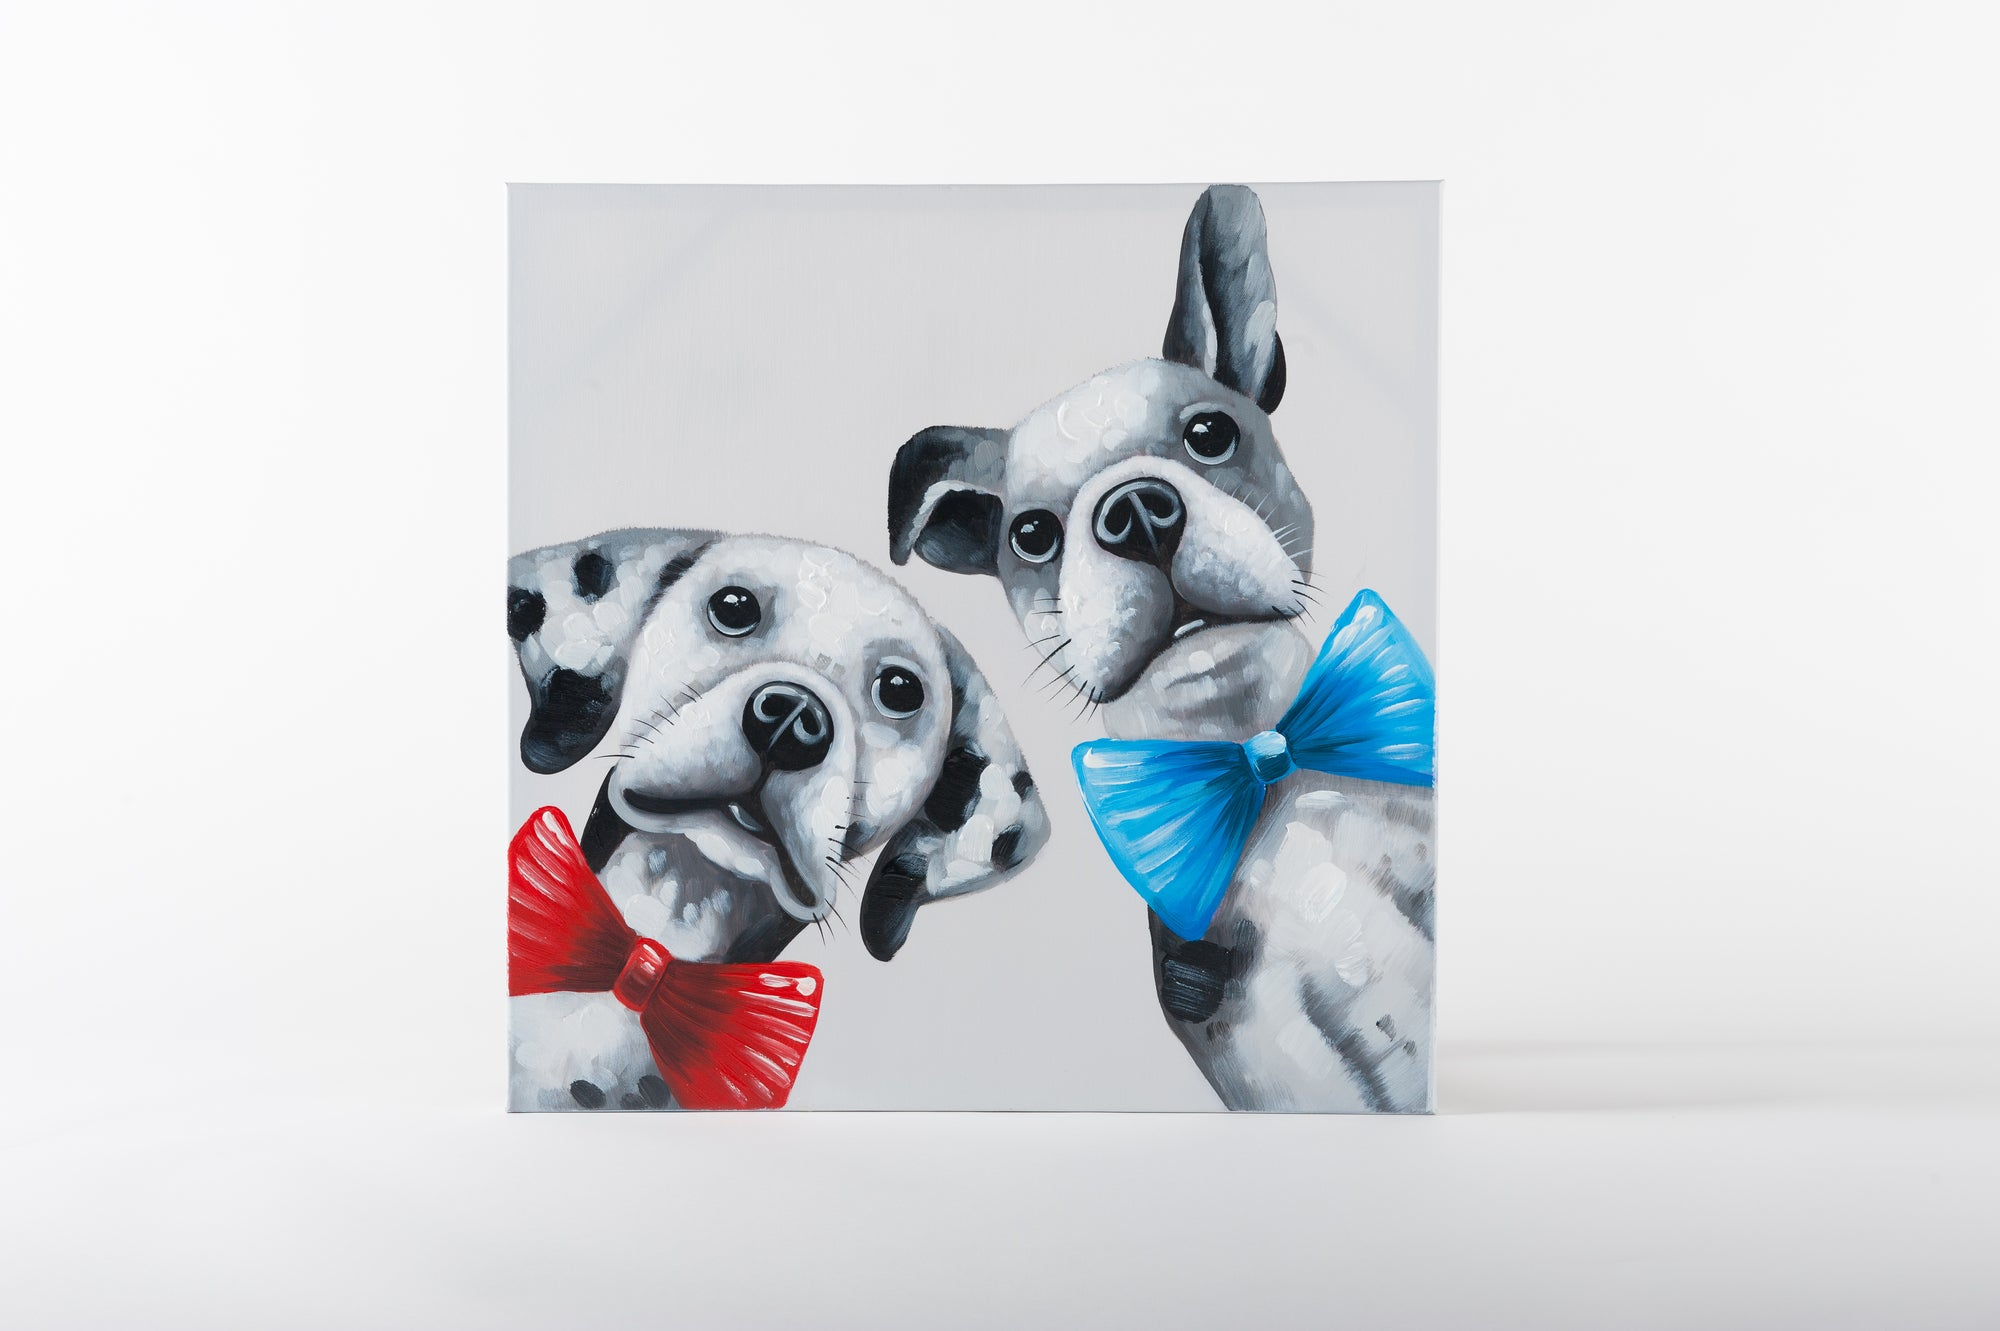 dandy doggy duo hand painted wall art on canvas - Fervor + Hue